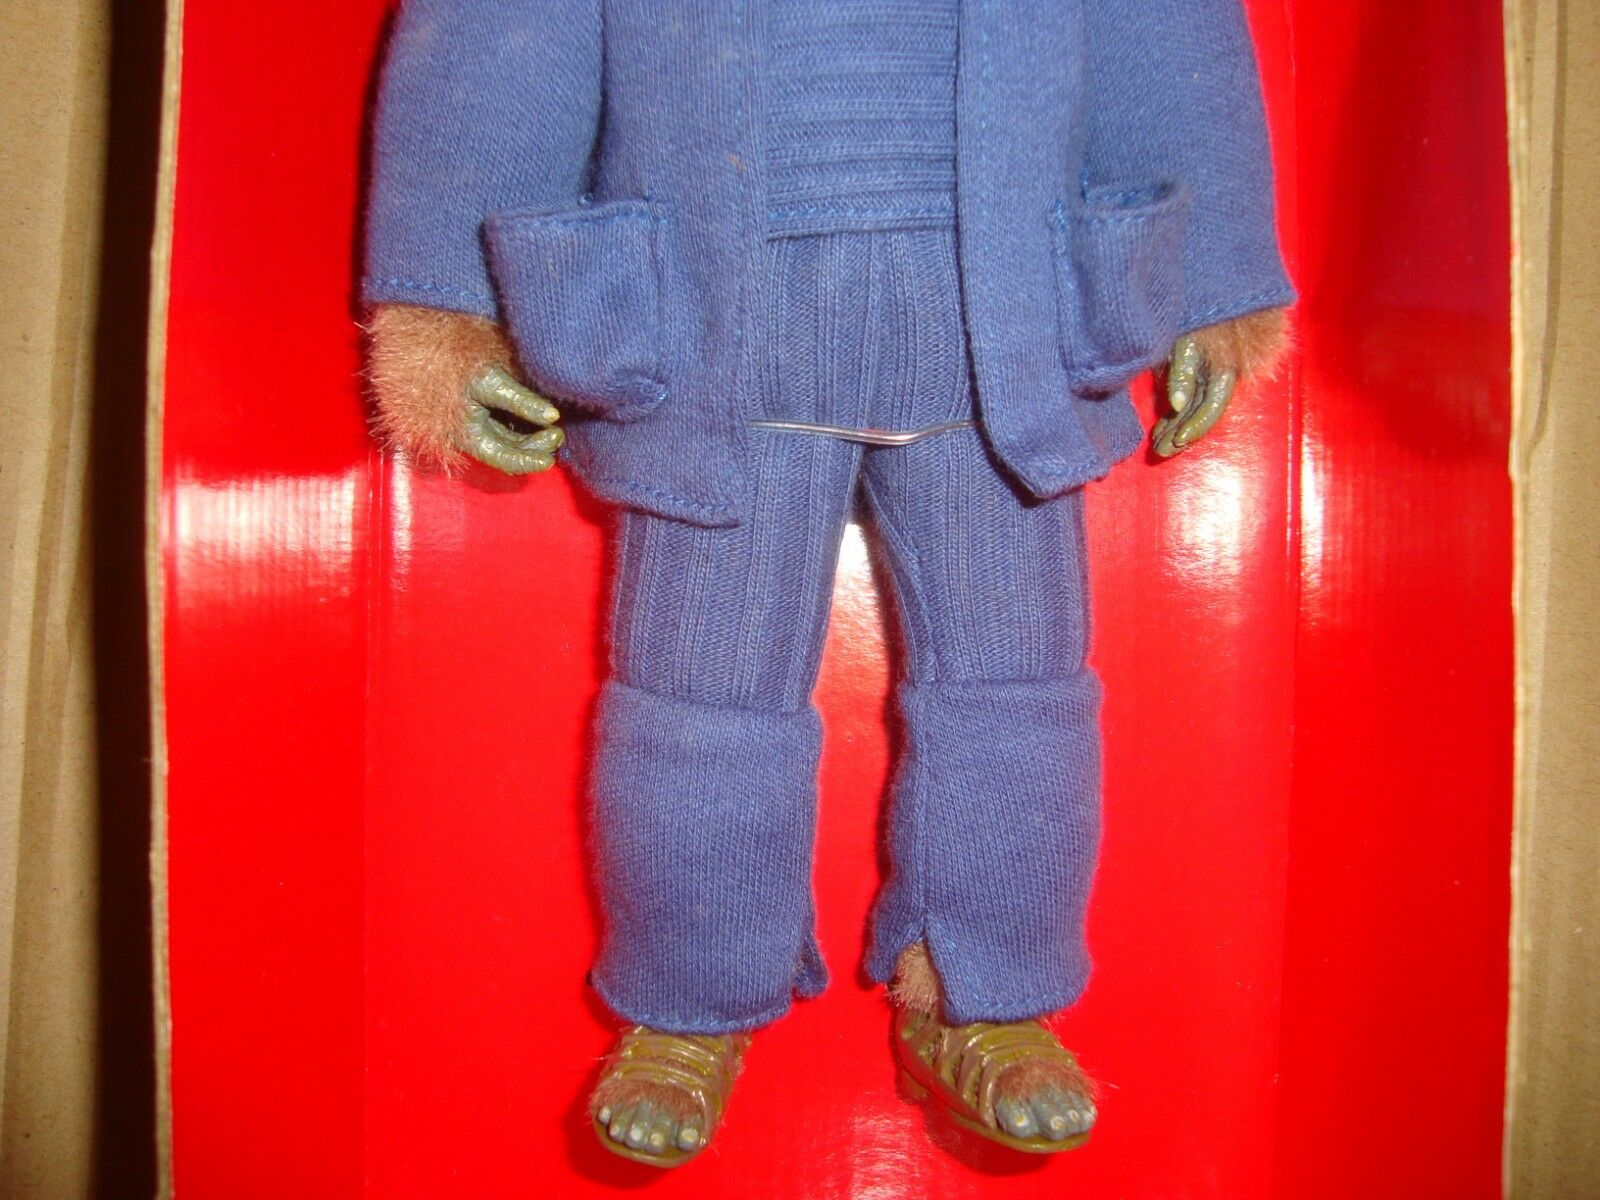 PLANET OF THE THE THE APES FIGURE LIMBO JUN PLANNING CO. 2001 392ab1